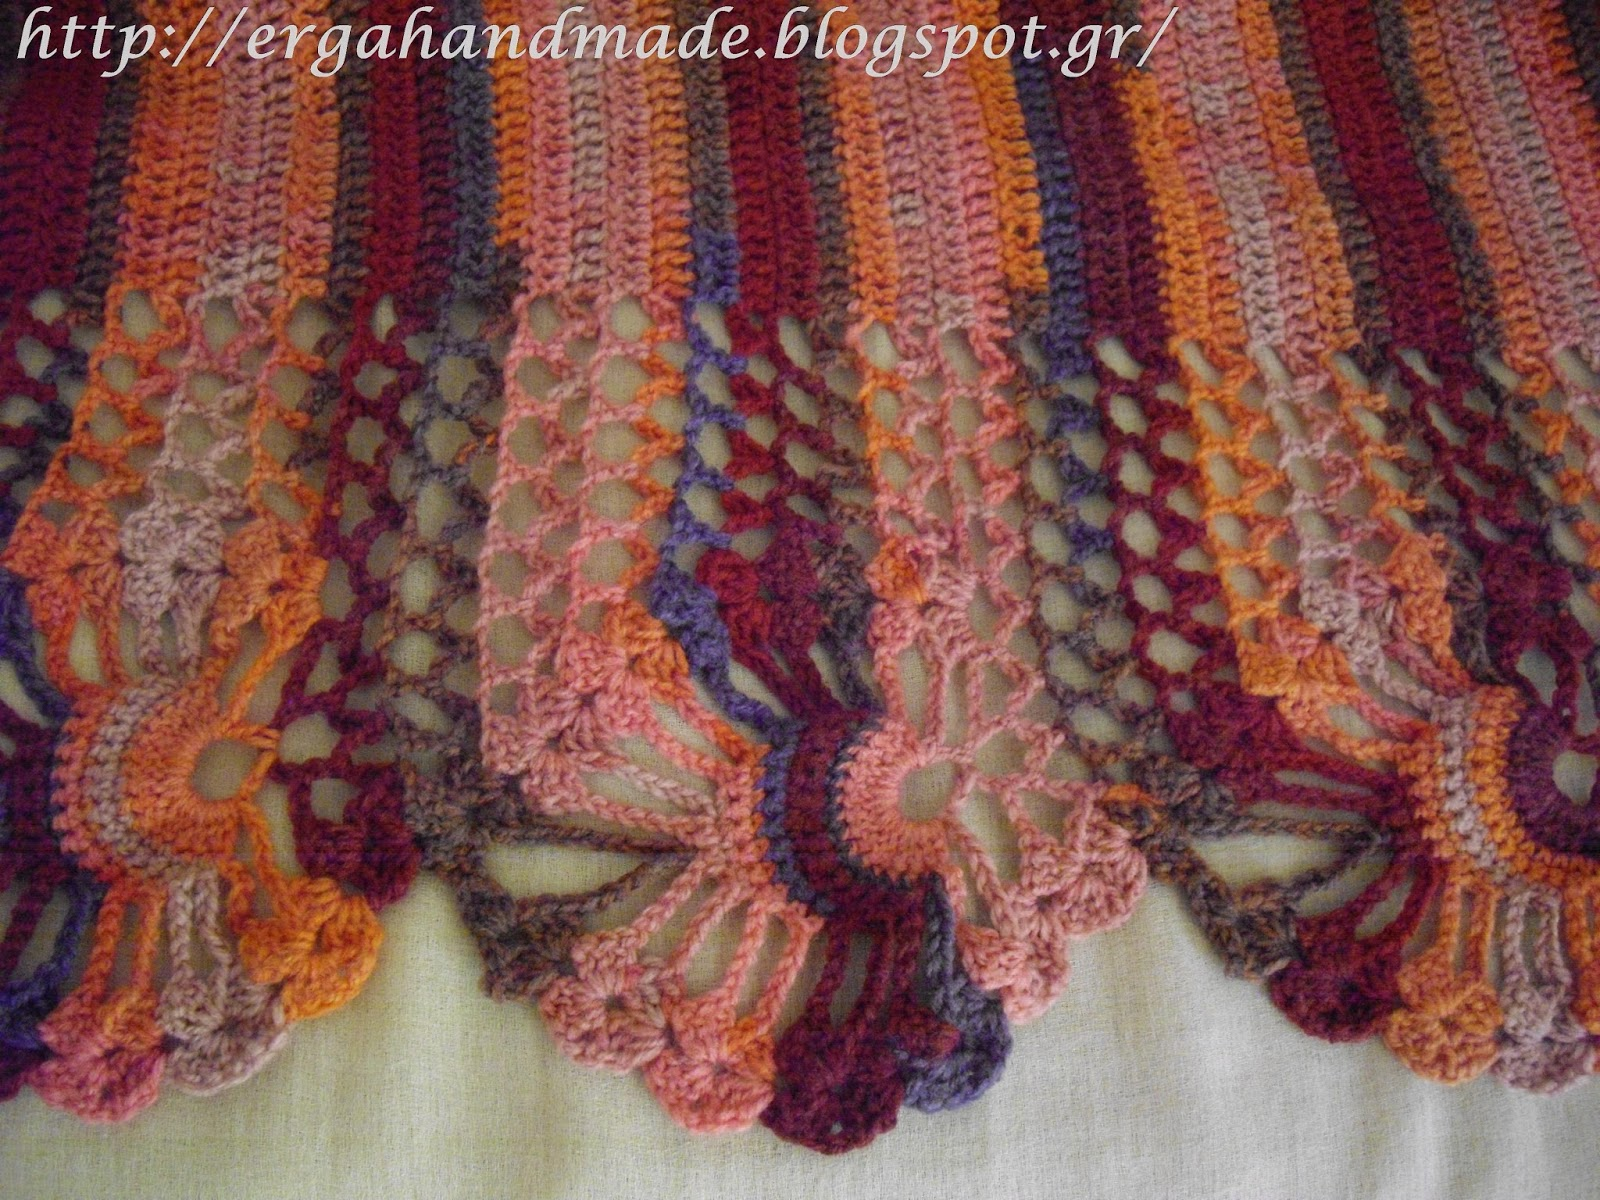 Ergahandmade Colorful Crochet Lace Shawl Diagram